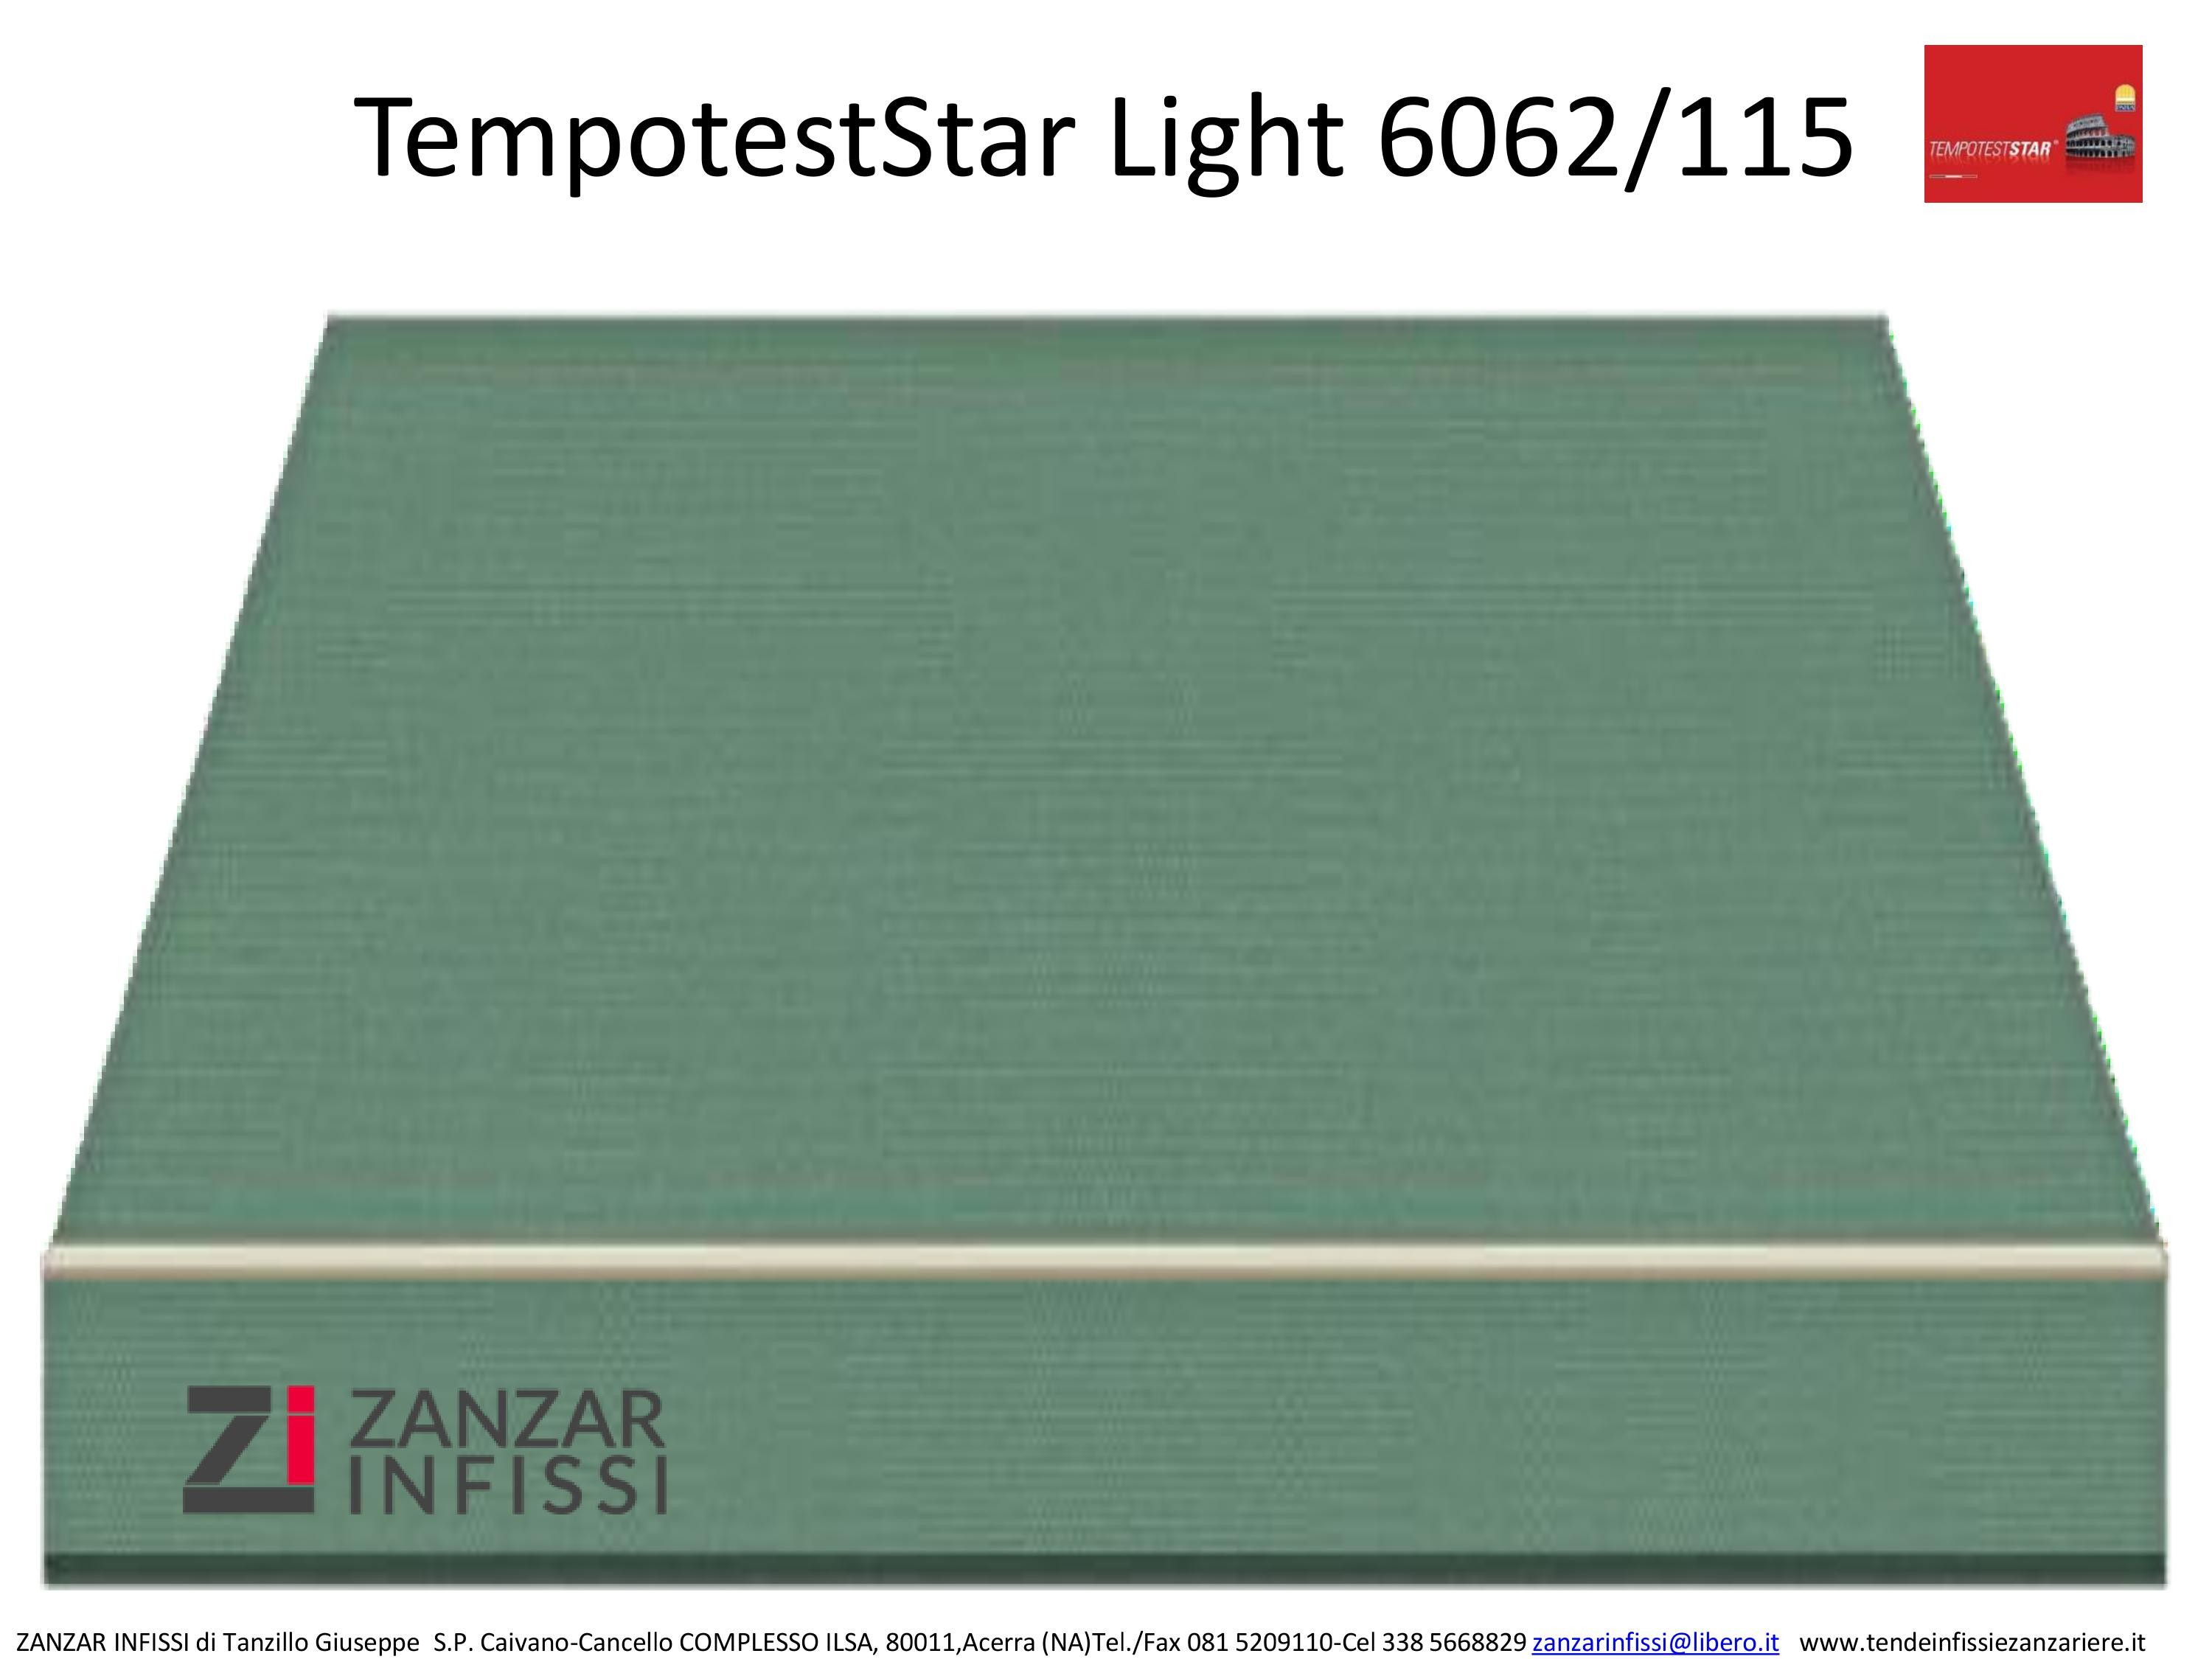 Tempotest star light 6062/115